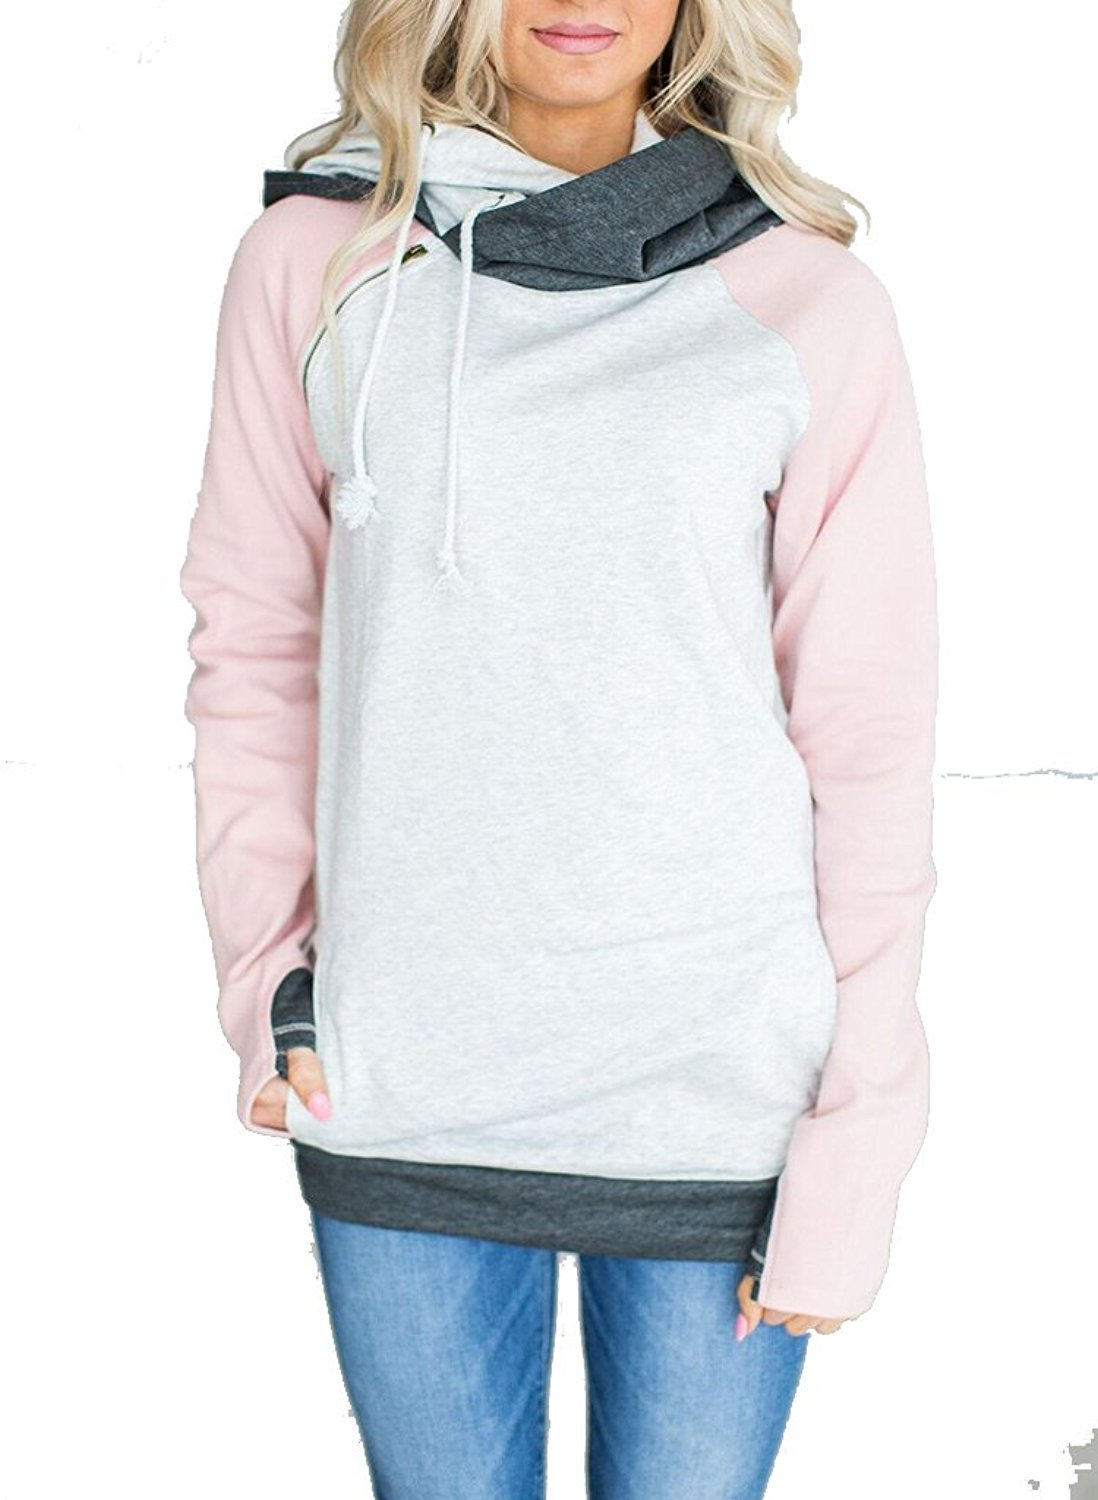 Women's Cowl Neck Color Block Long Sleeve Zipper Hoodies Pullover Sweatshirts